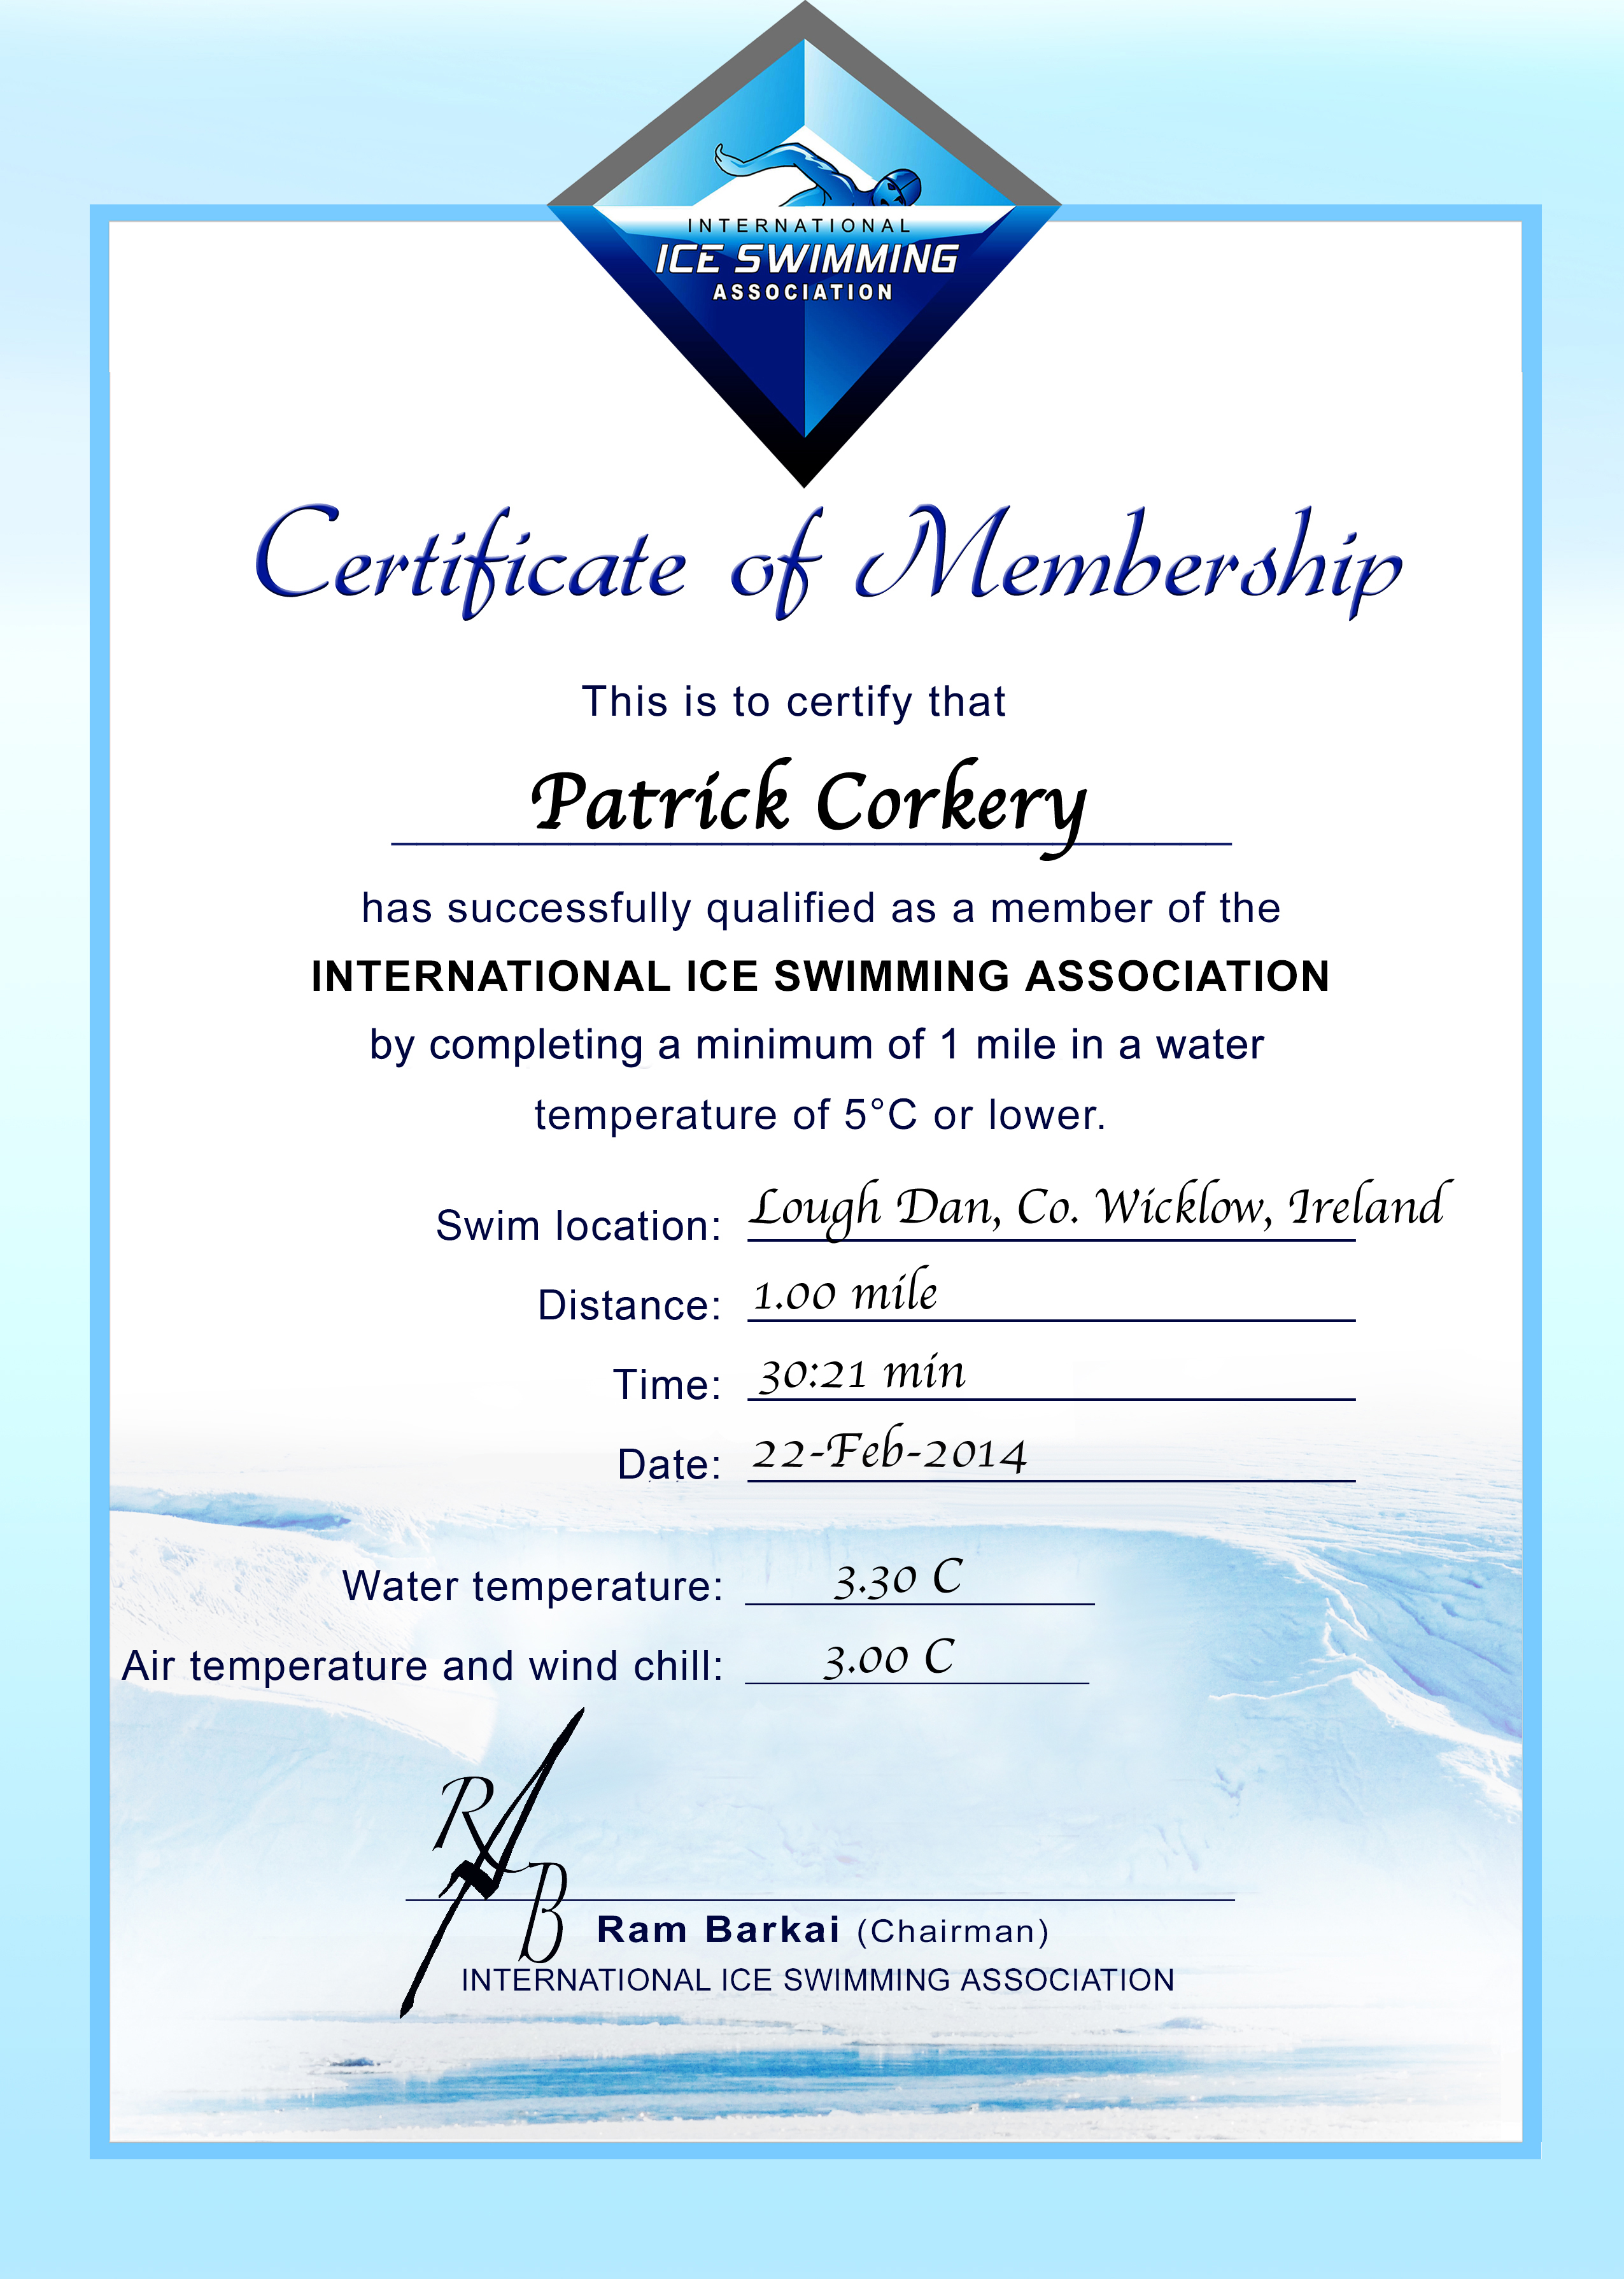 Ice Mile Certificate - Patrick Corkery